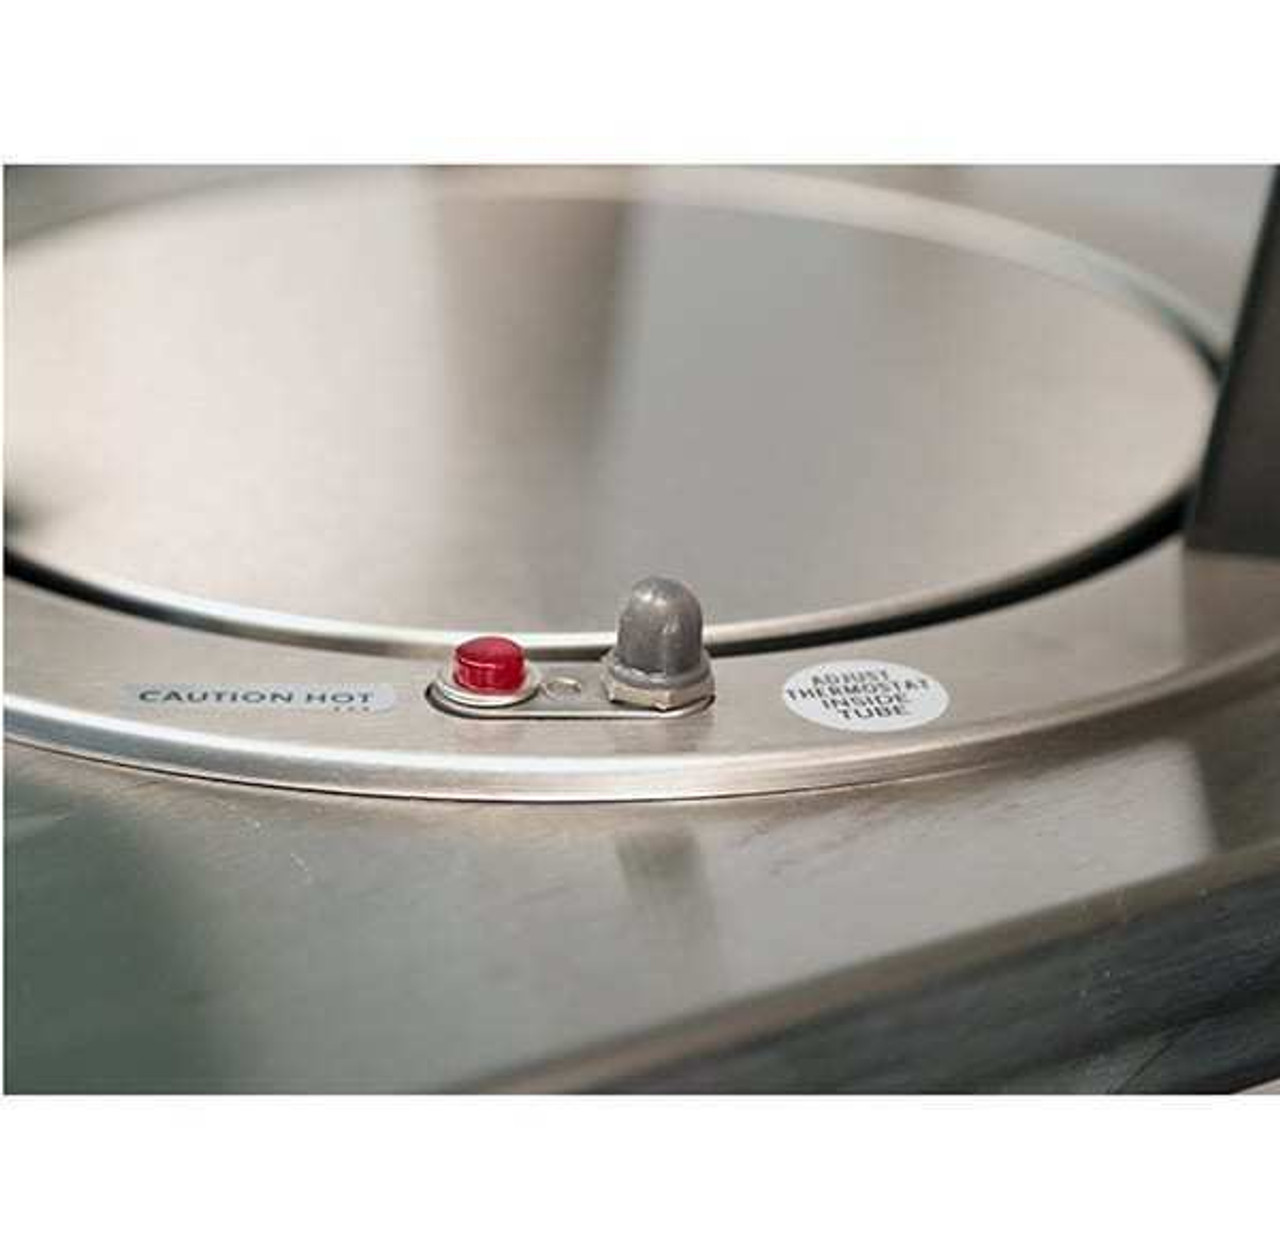 """Dish Dispenser, heated, cabinet style, enclosed base, mobile, (2) self-leveling dish dispensing tubes, 9-1/4"""" to 10-1/8"""" diameter dish size, stainless steel construction, 4"""" Lake-Glide® swivel casters (2) with brakes, 6' coiled cord with NEMA 5-15P, NSF, UL, Made in USA"""